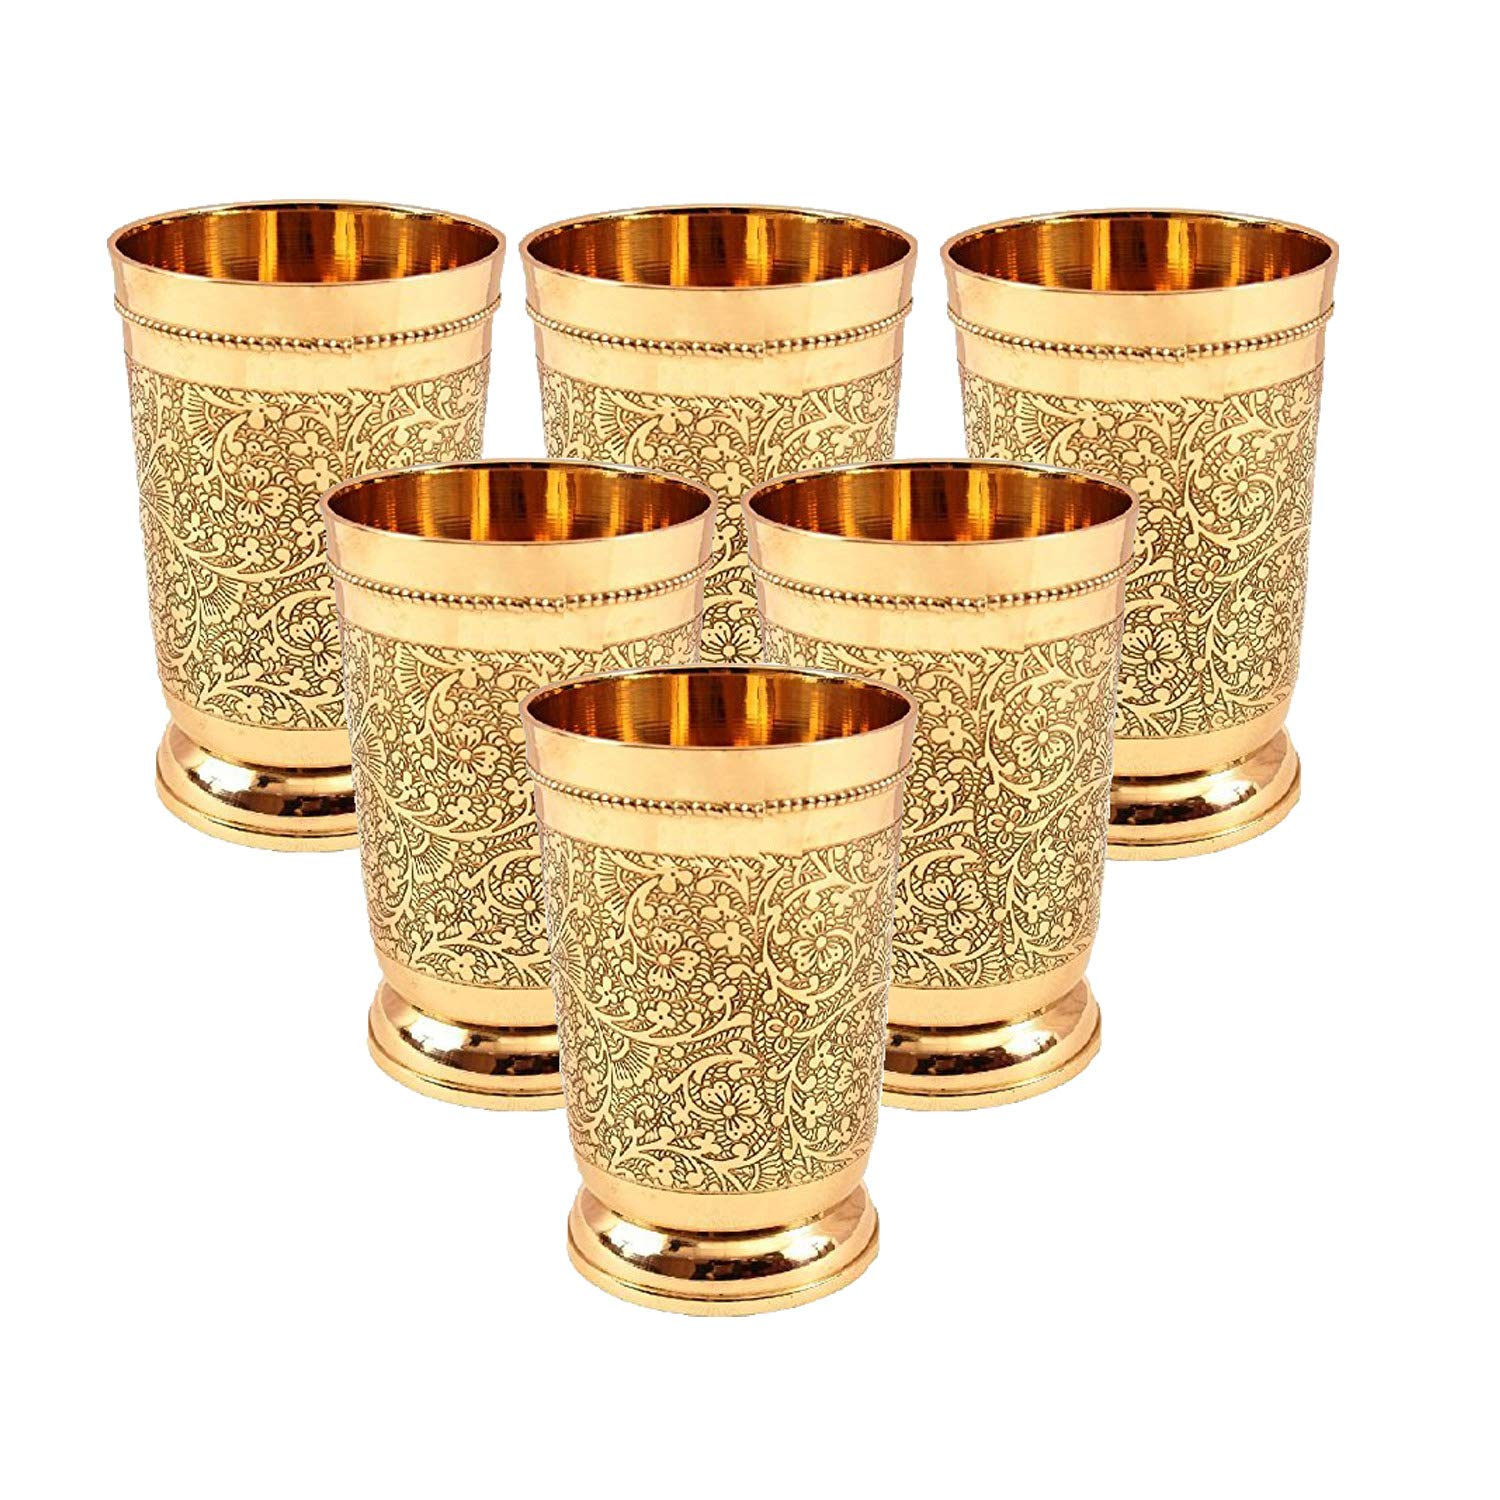 Set Of 6 Embossed Designer Brass Mint Julep Cup Goblet Tumbler Capacity 12 Ounce Each by PARIJAT HANDICRAFT